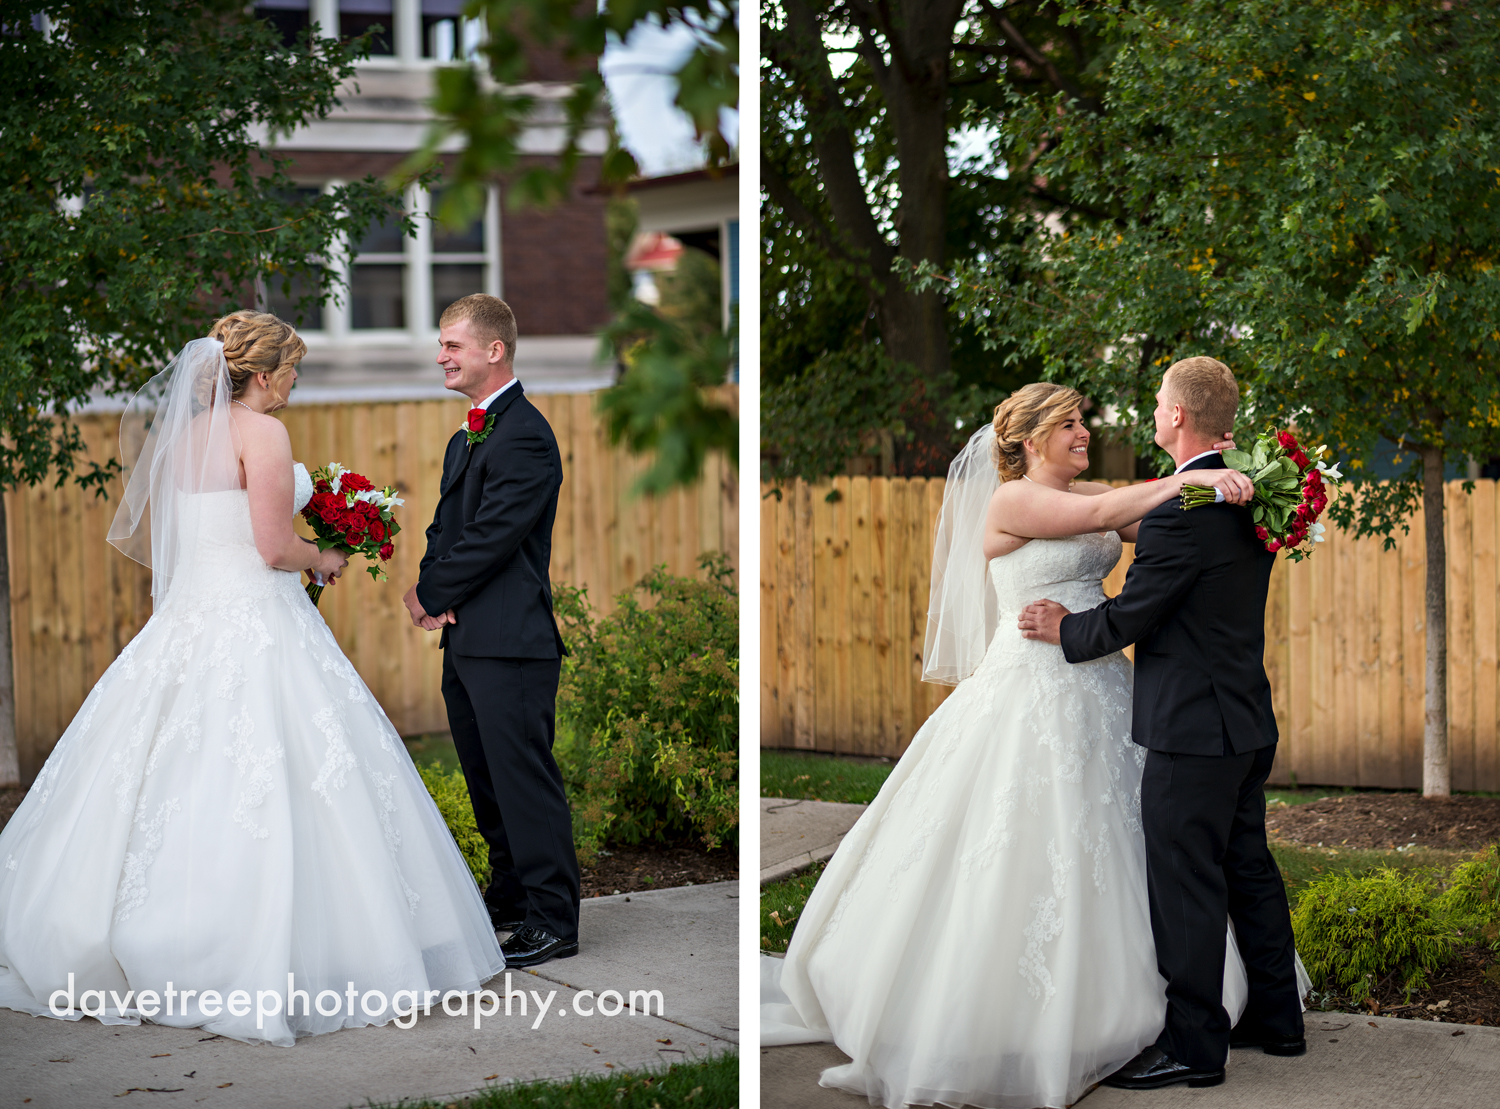 holland_wedding_photographer_66.jpg